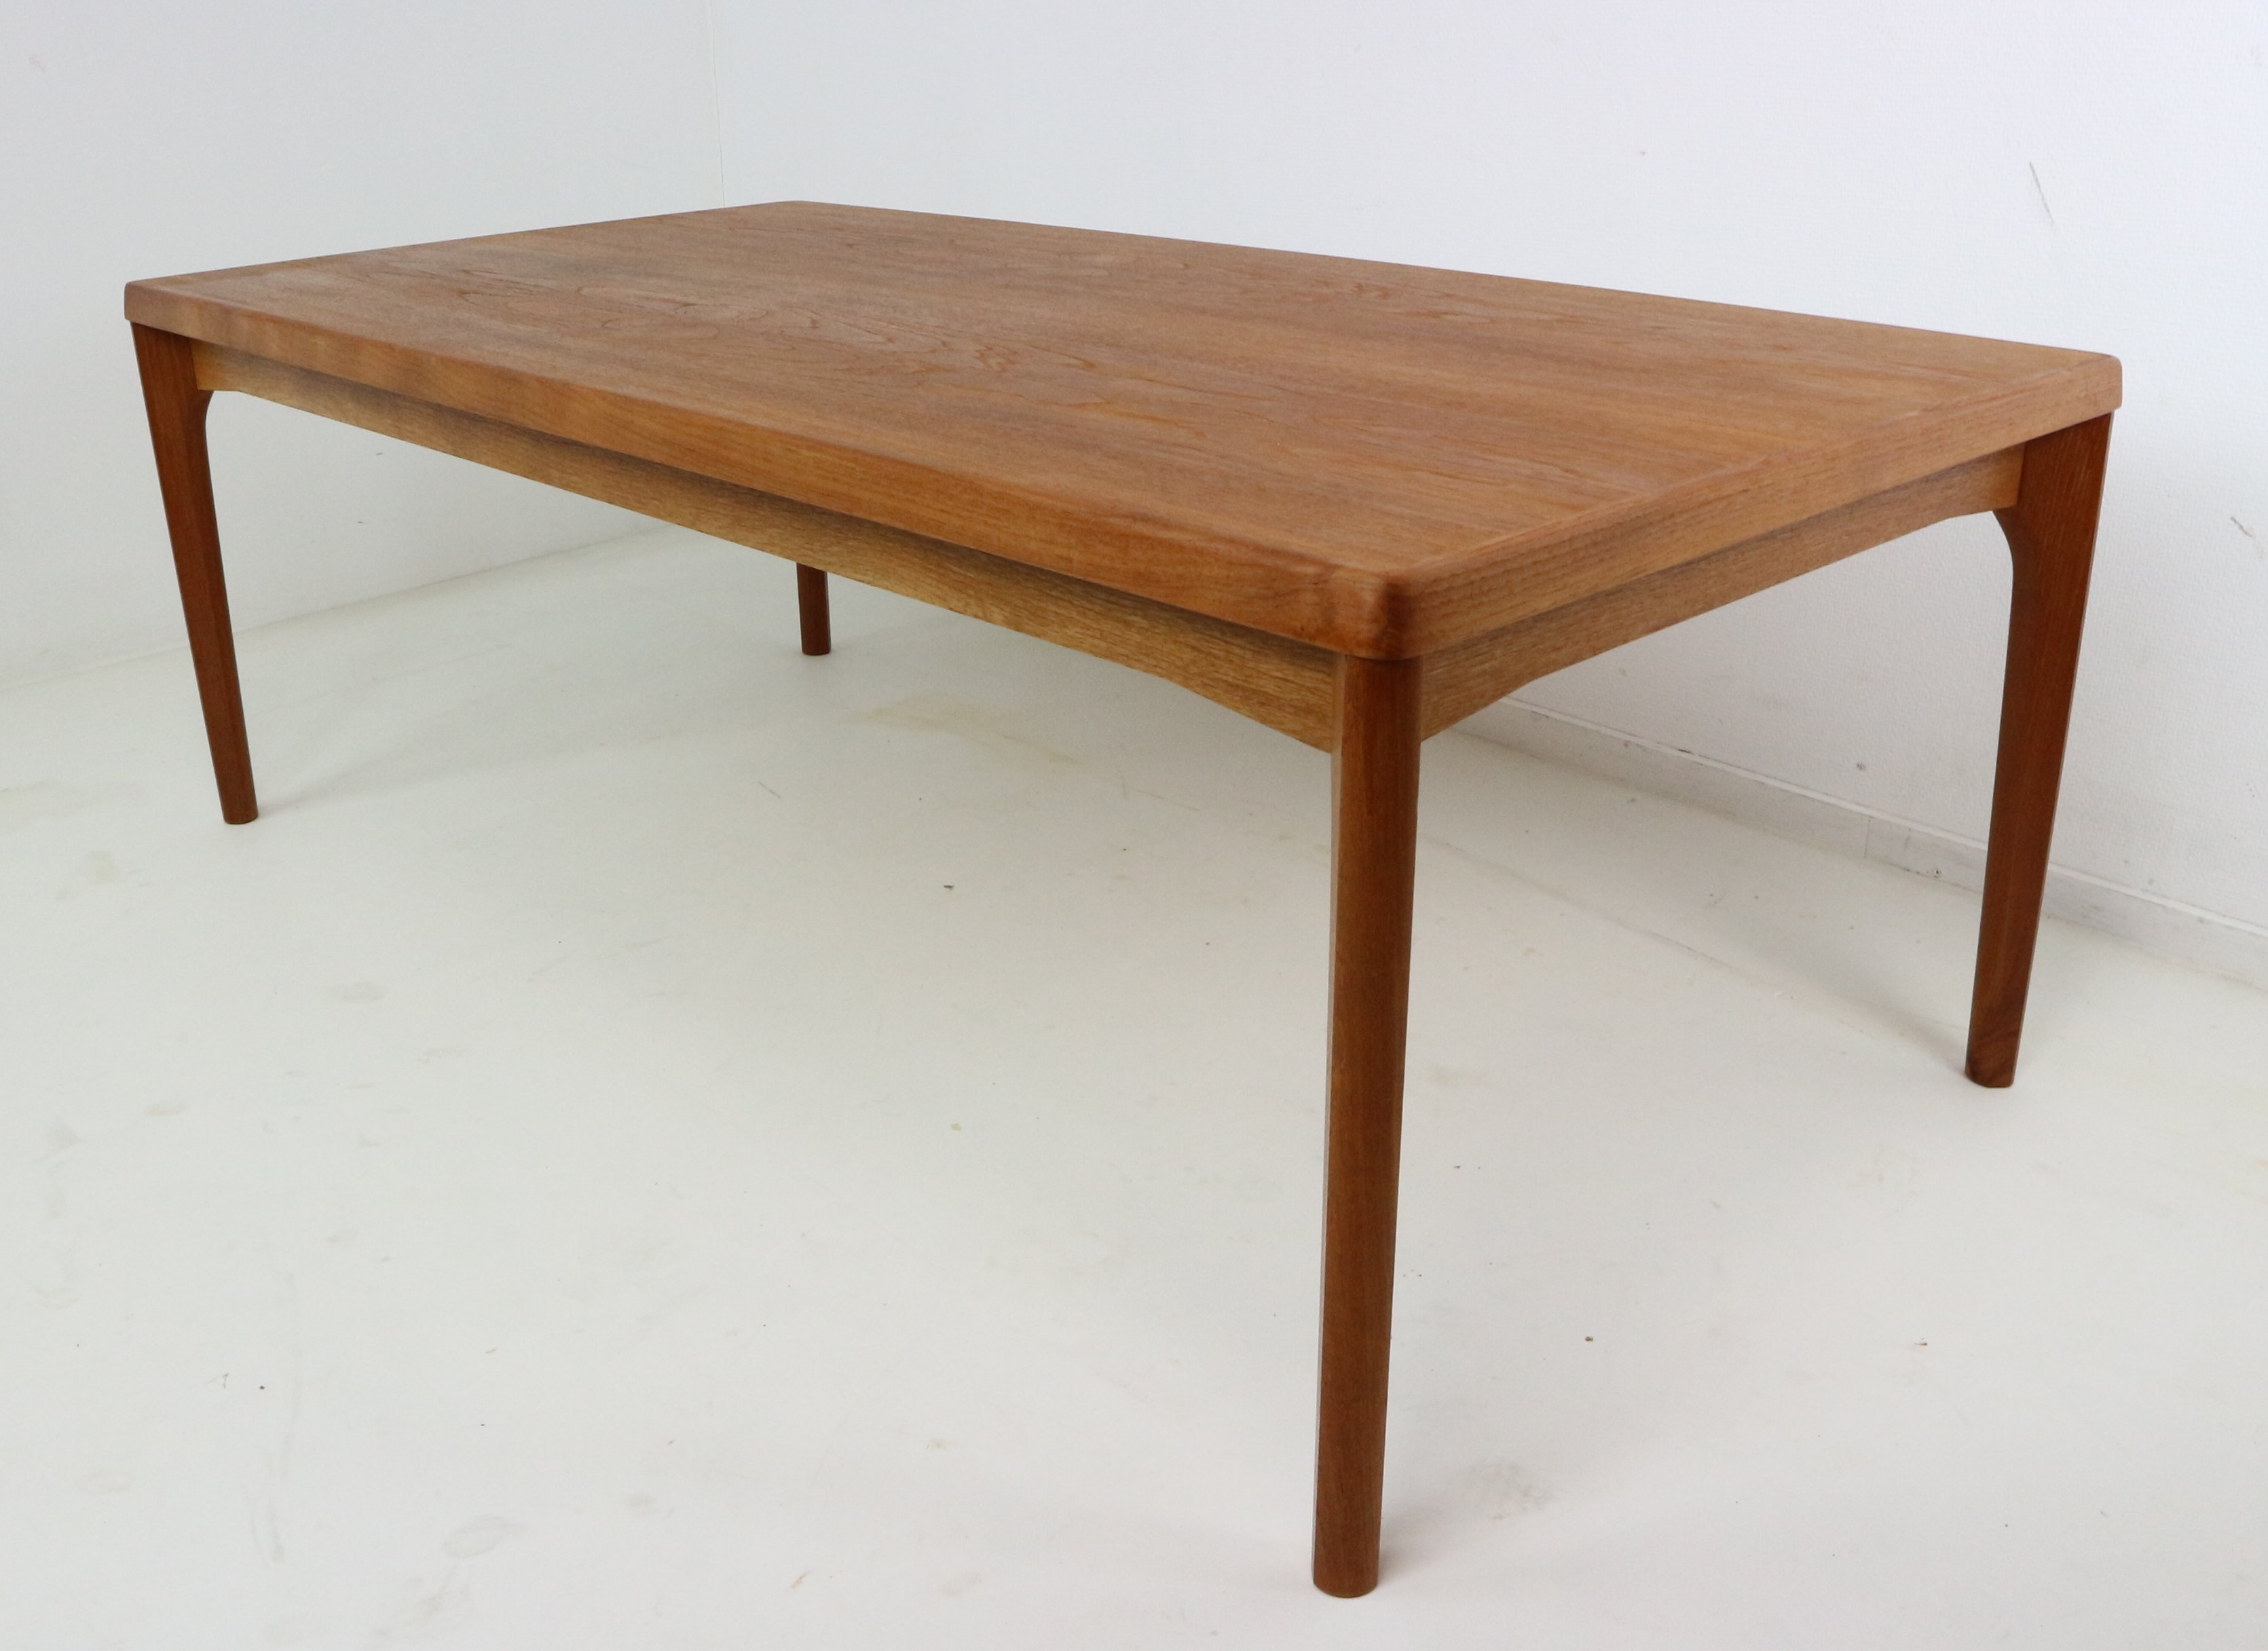 Danish Design Coffee Table By Henning Kjaernulf For Vejle Stole 1960s